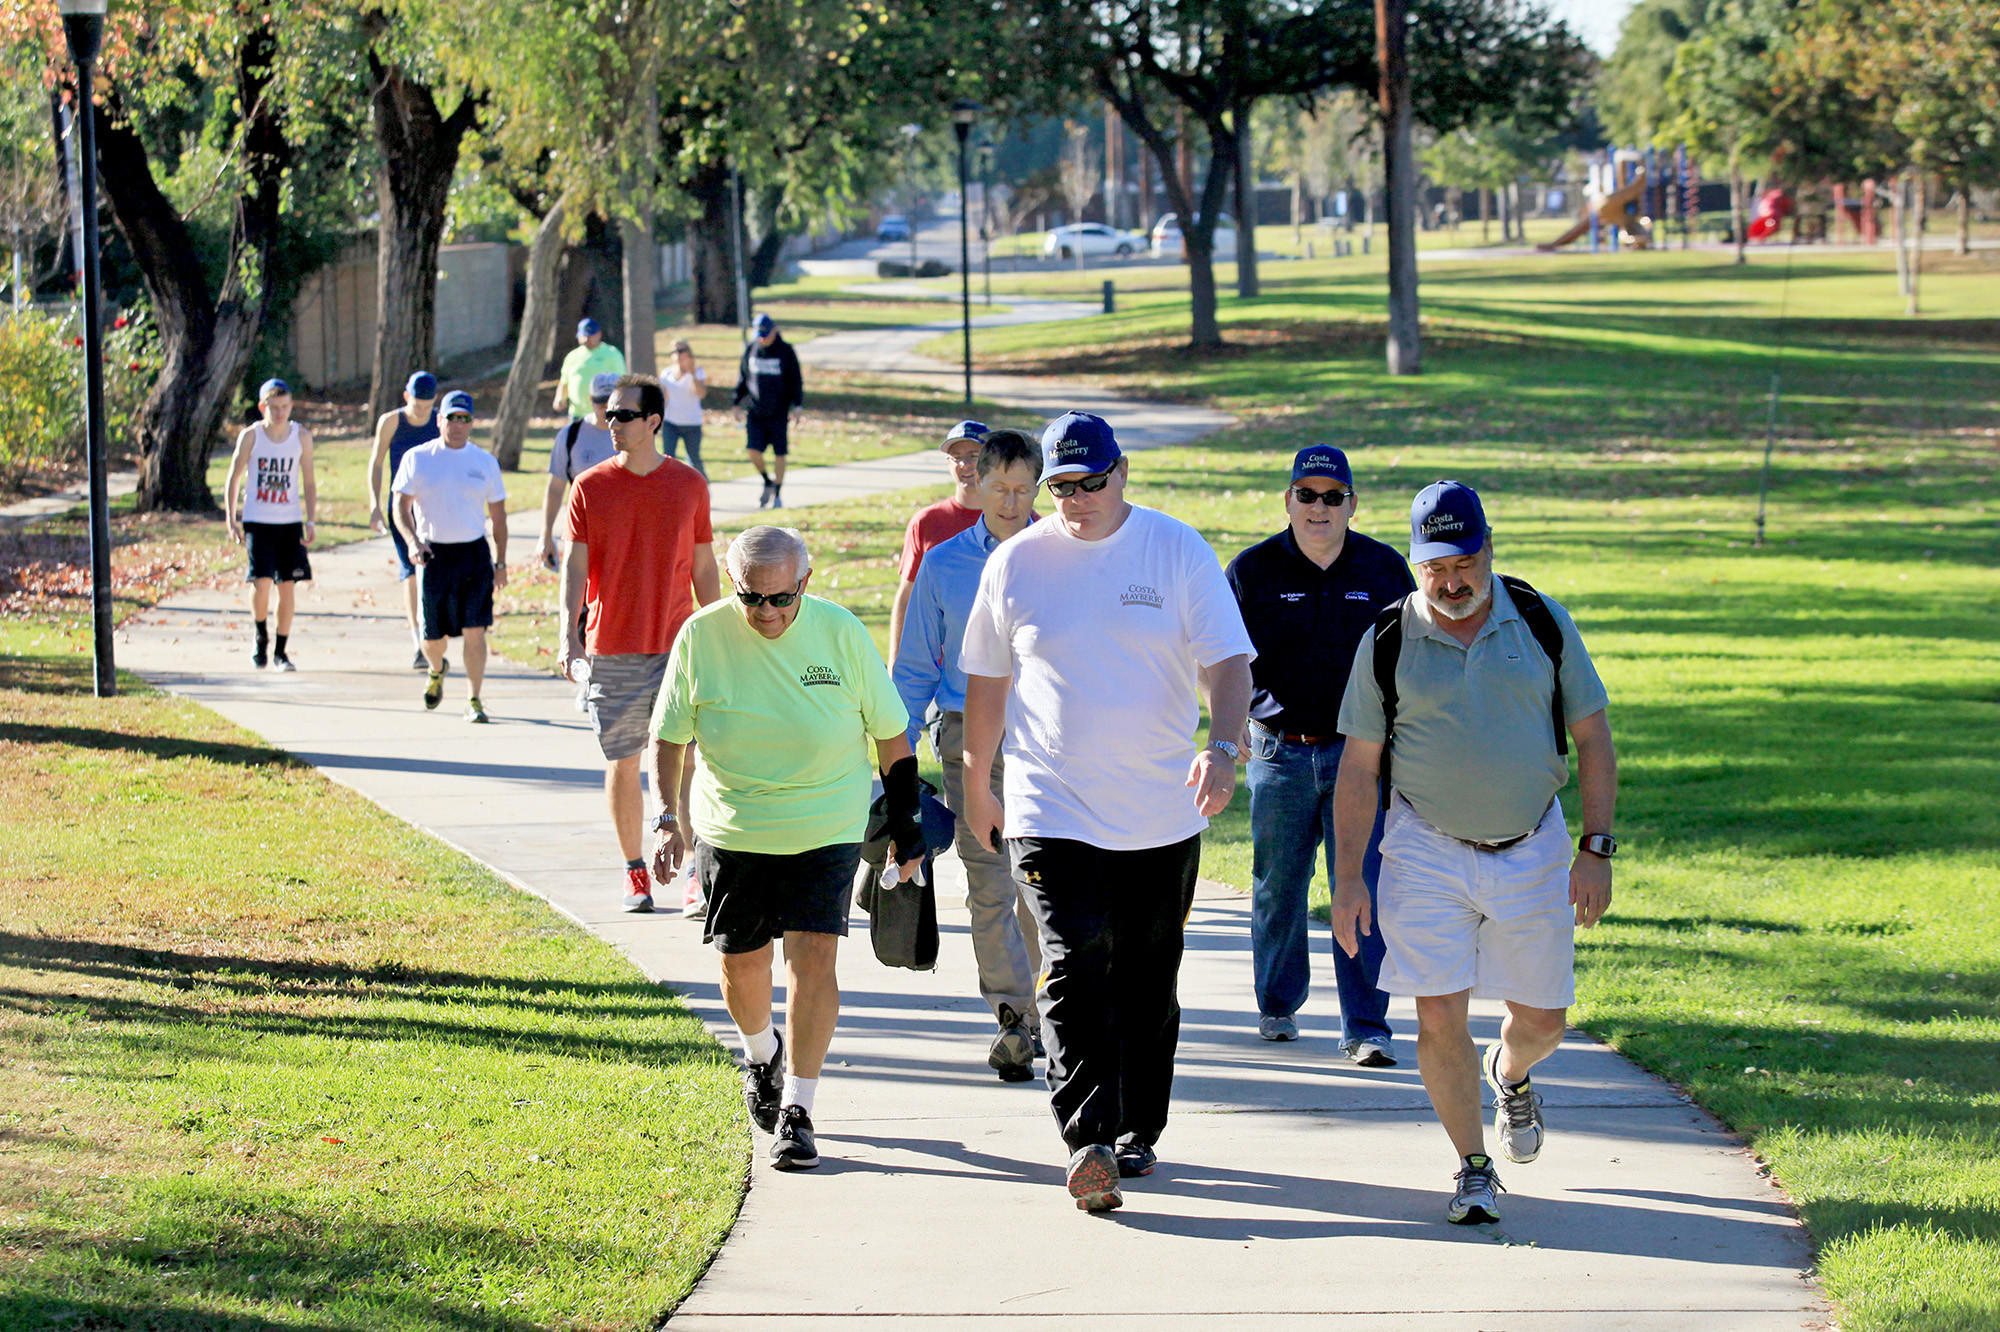 Mayor Pro Tem Steve Mensinger, foreground center, and a dozen other participants stroll through Gisler Park in Costa Mesa on New Year's Eve. The group completed a 5.38-mile walk that started at the Diego Sepulveda Adobe in Estancia Park and ended at Plaza Tower, near South Coast Plaza.